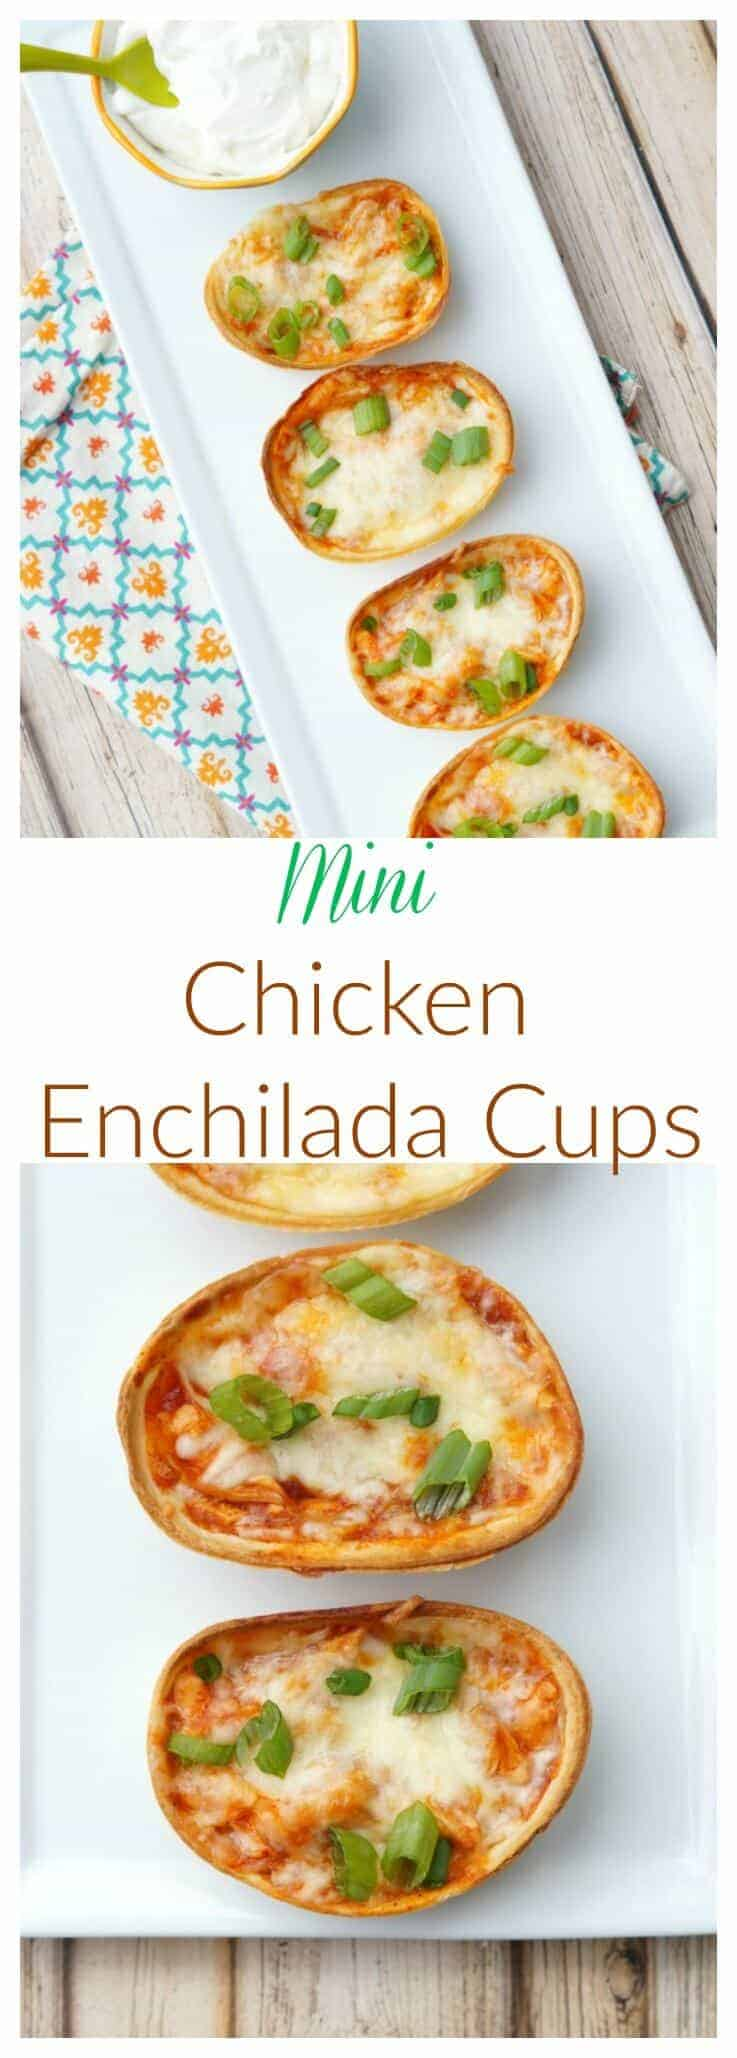 Mini Chicken Enchiladas Cups are the perfect two bite appetizer! Cheesy, easy, and full of Mexican flavors, these are perfect for any party or event!